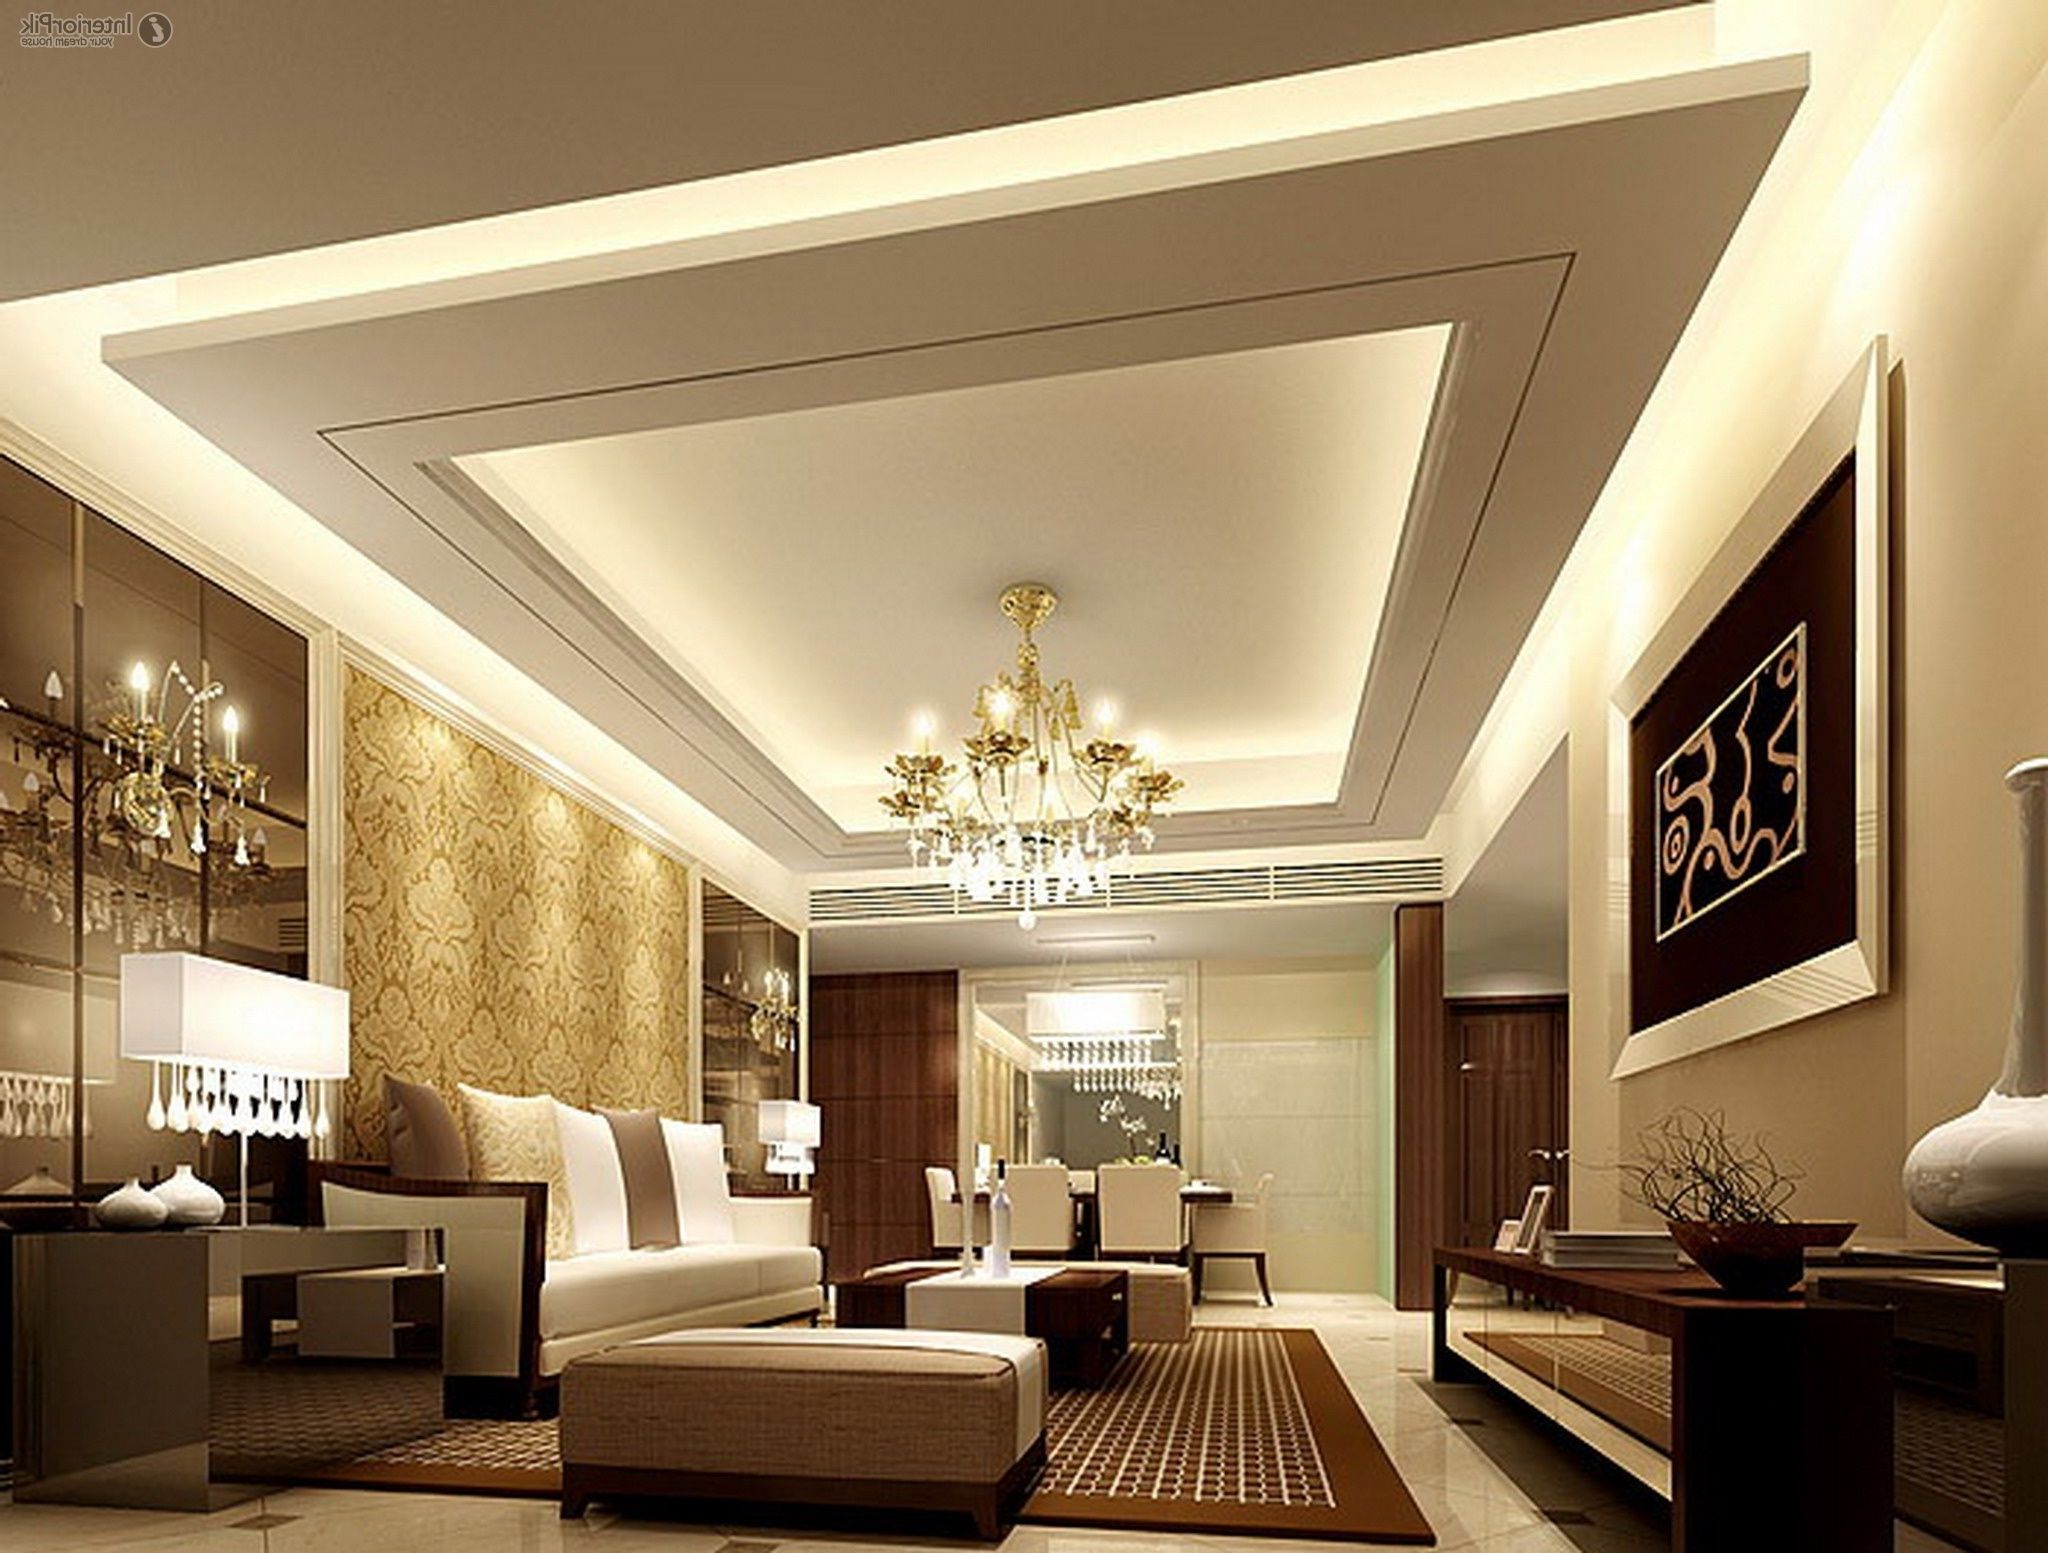 Gypsum Ceiling Design For Living Room Lighting Home Decorate Best